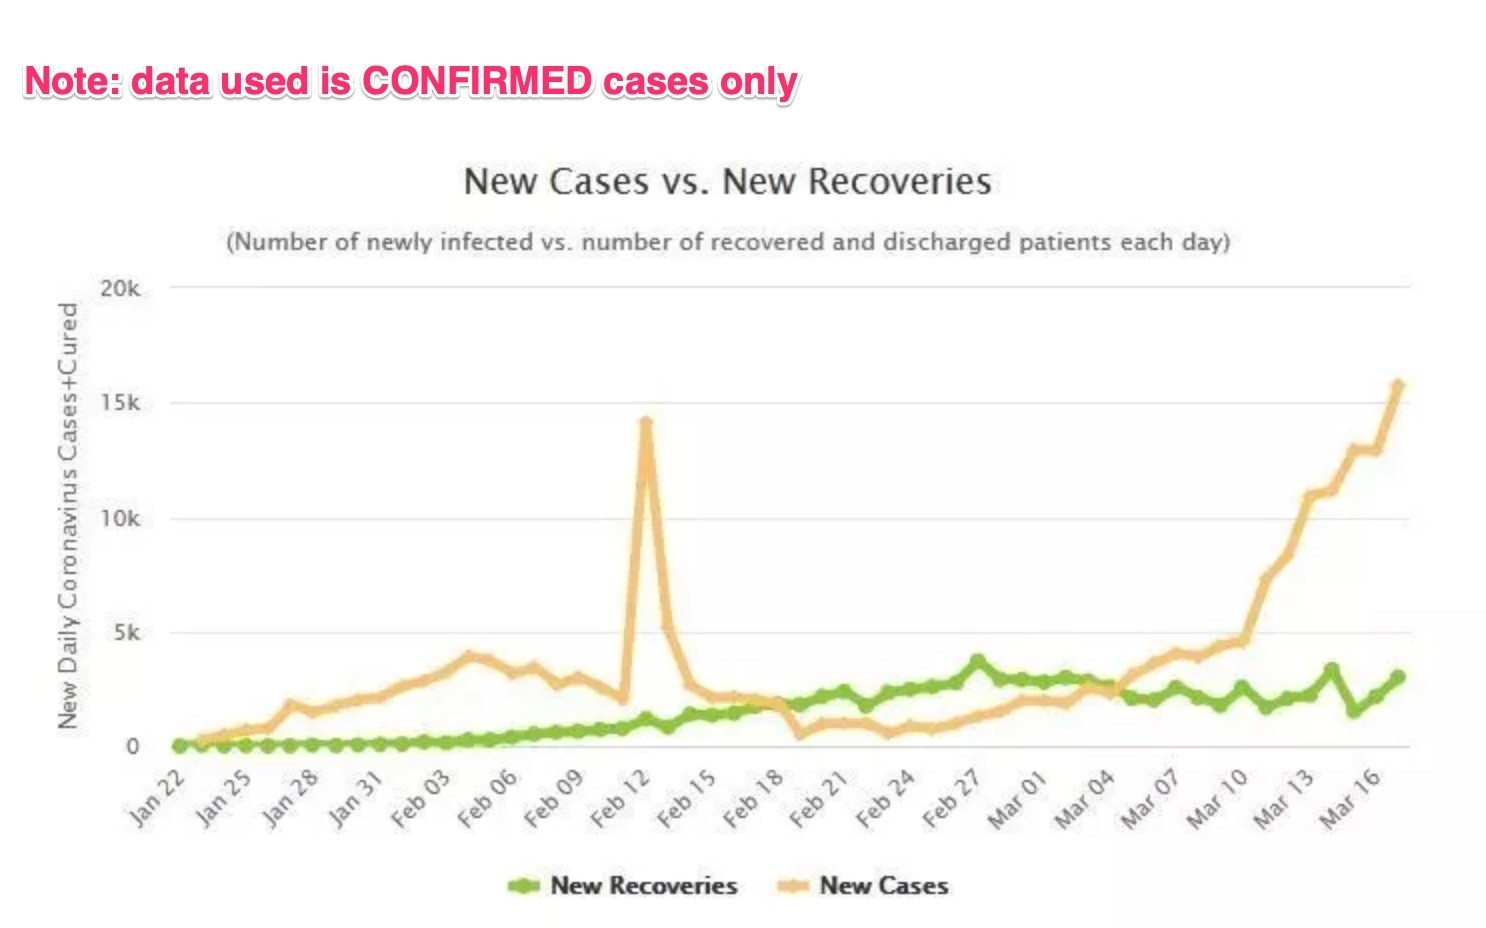 New cases vs. new recoveries